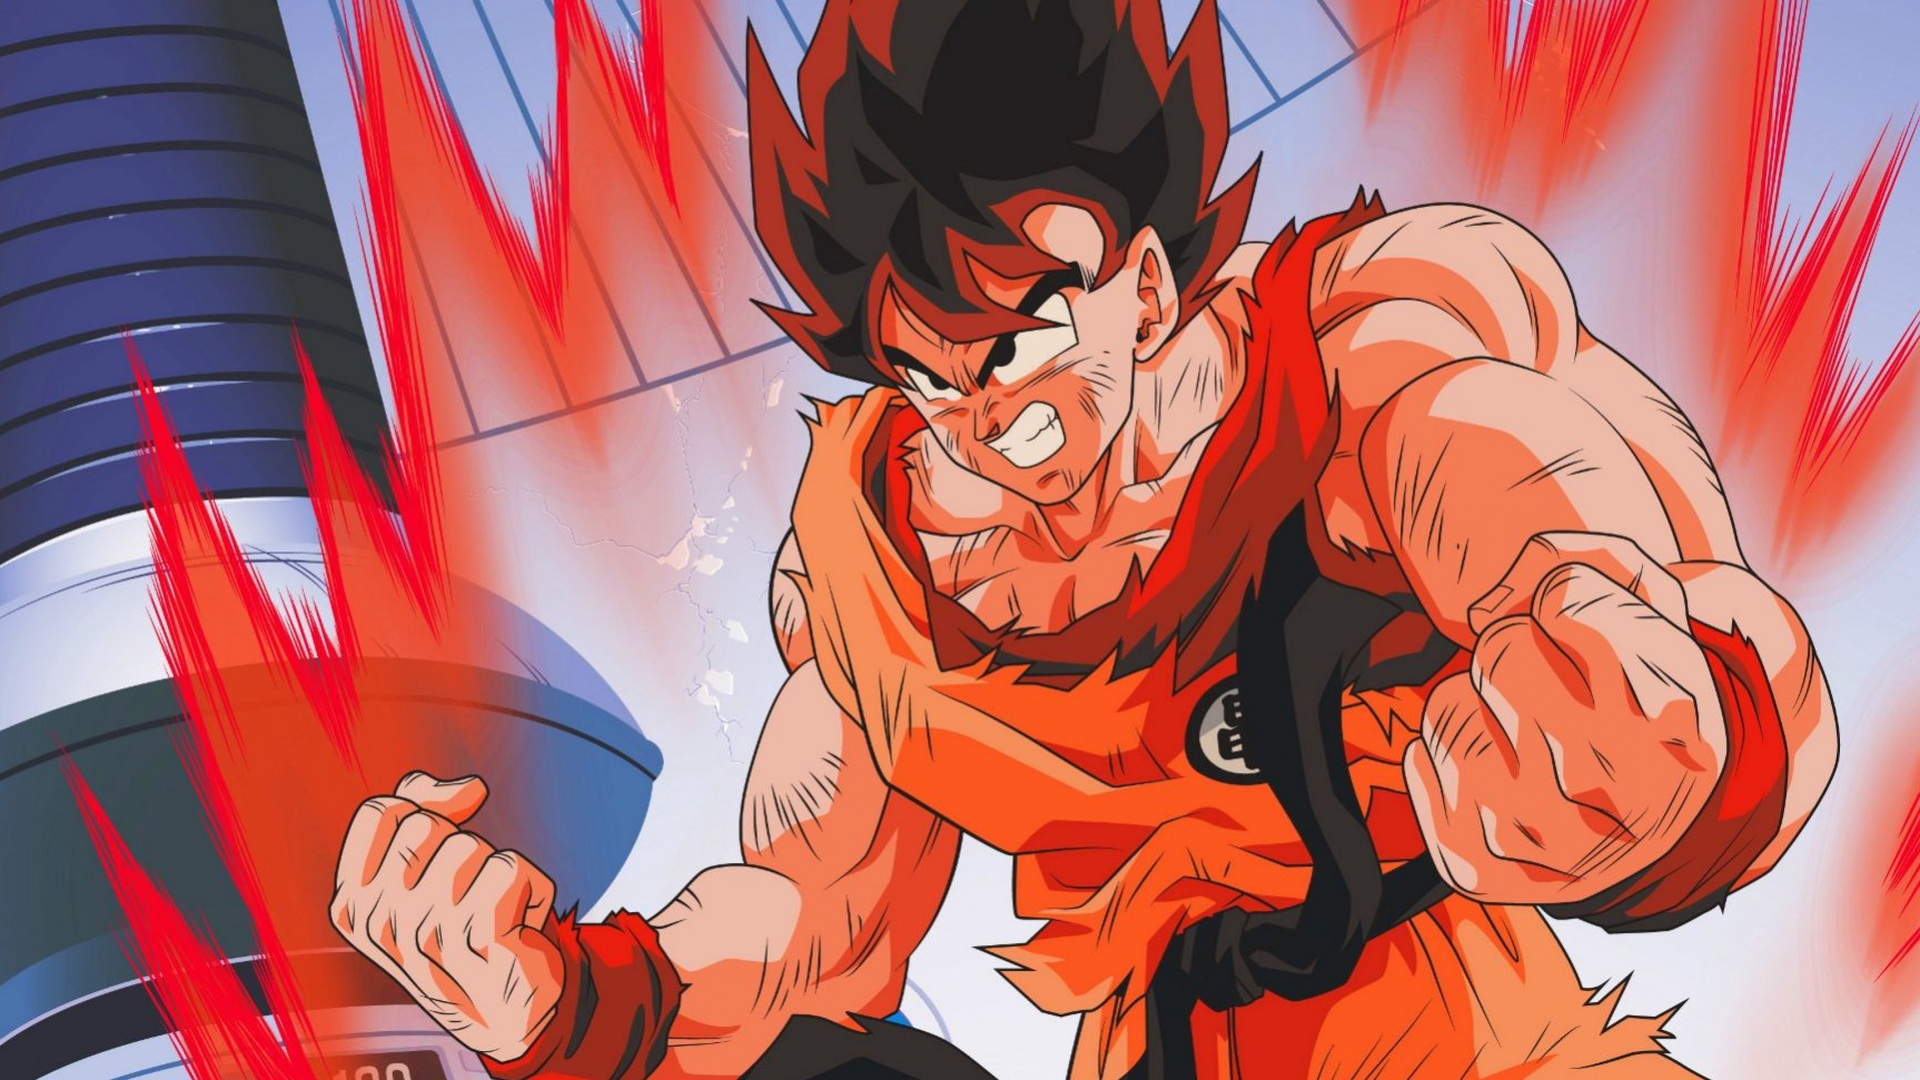 1920x1080 Goku Dragon Ball Z 4k Laptop Full Hd 1080p Hd 4k Wallpapers Images Backgrounds Photos And Pictures